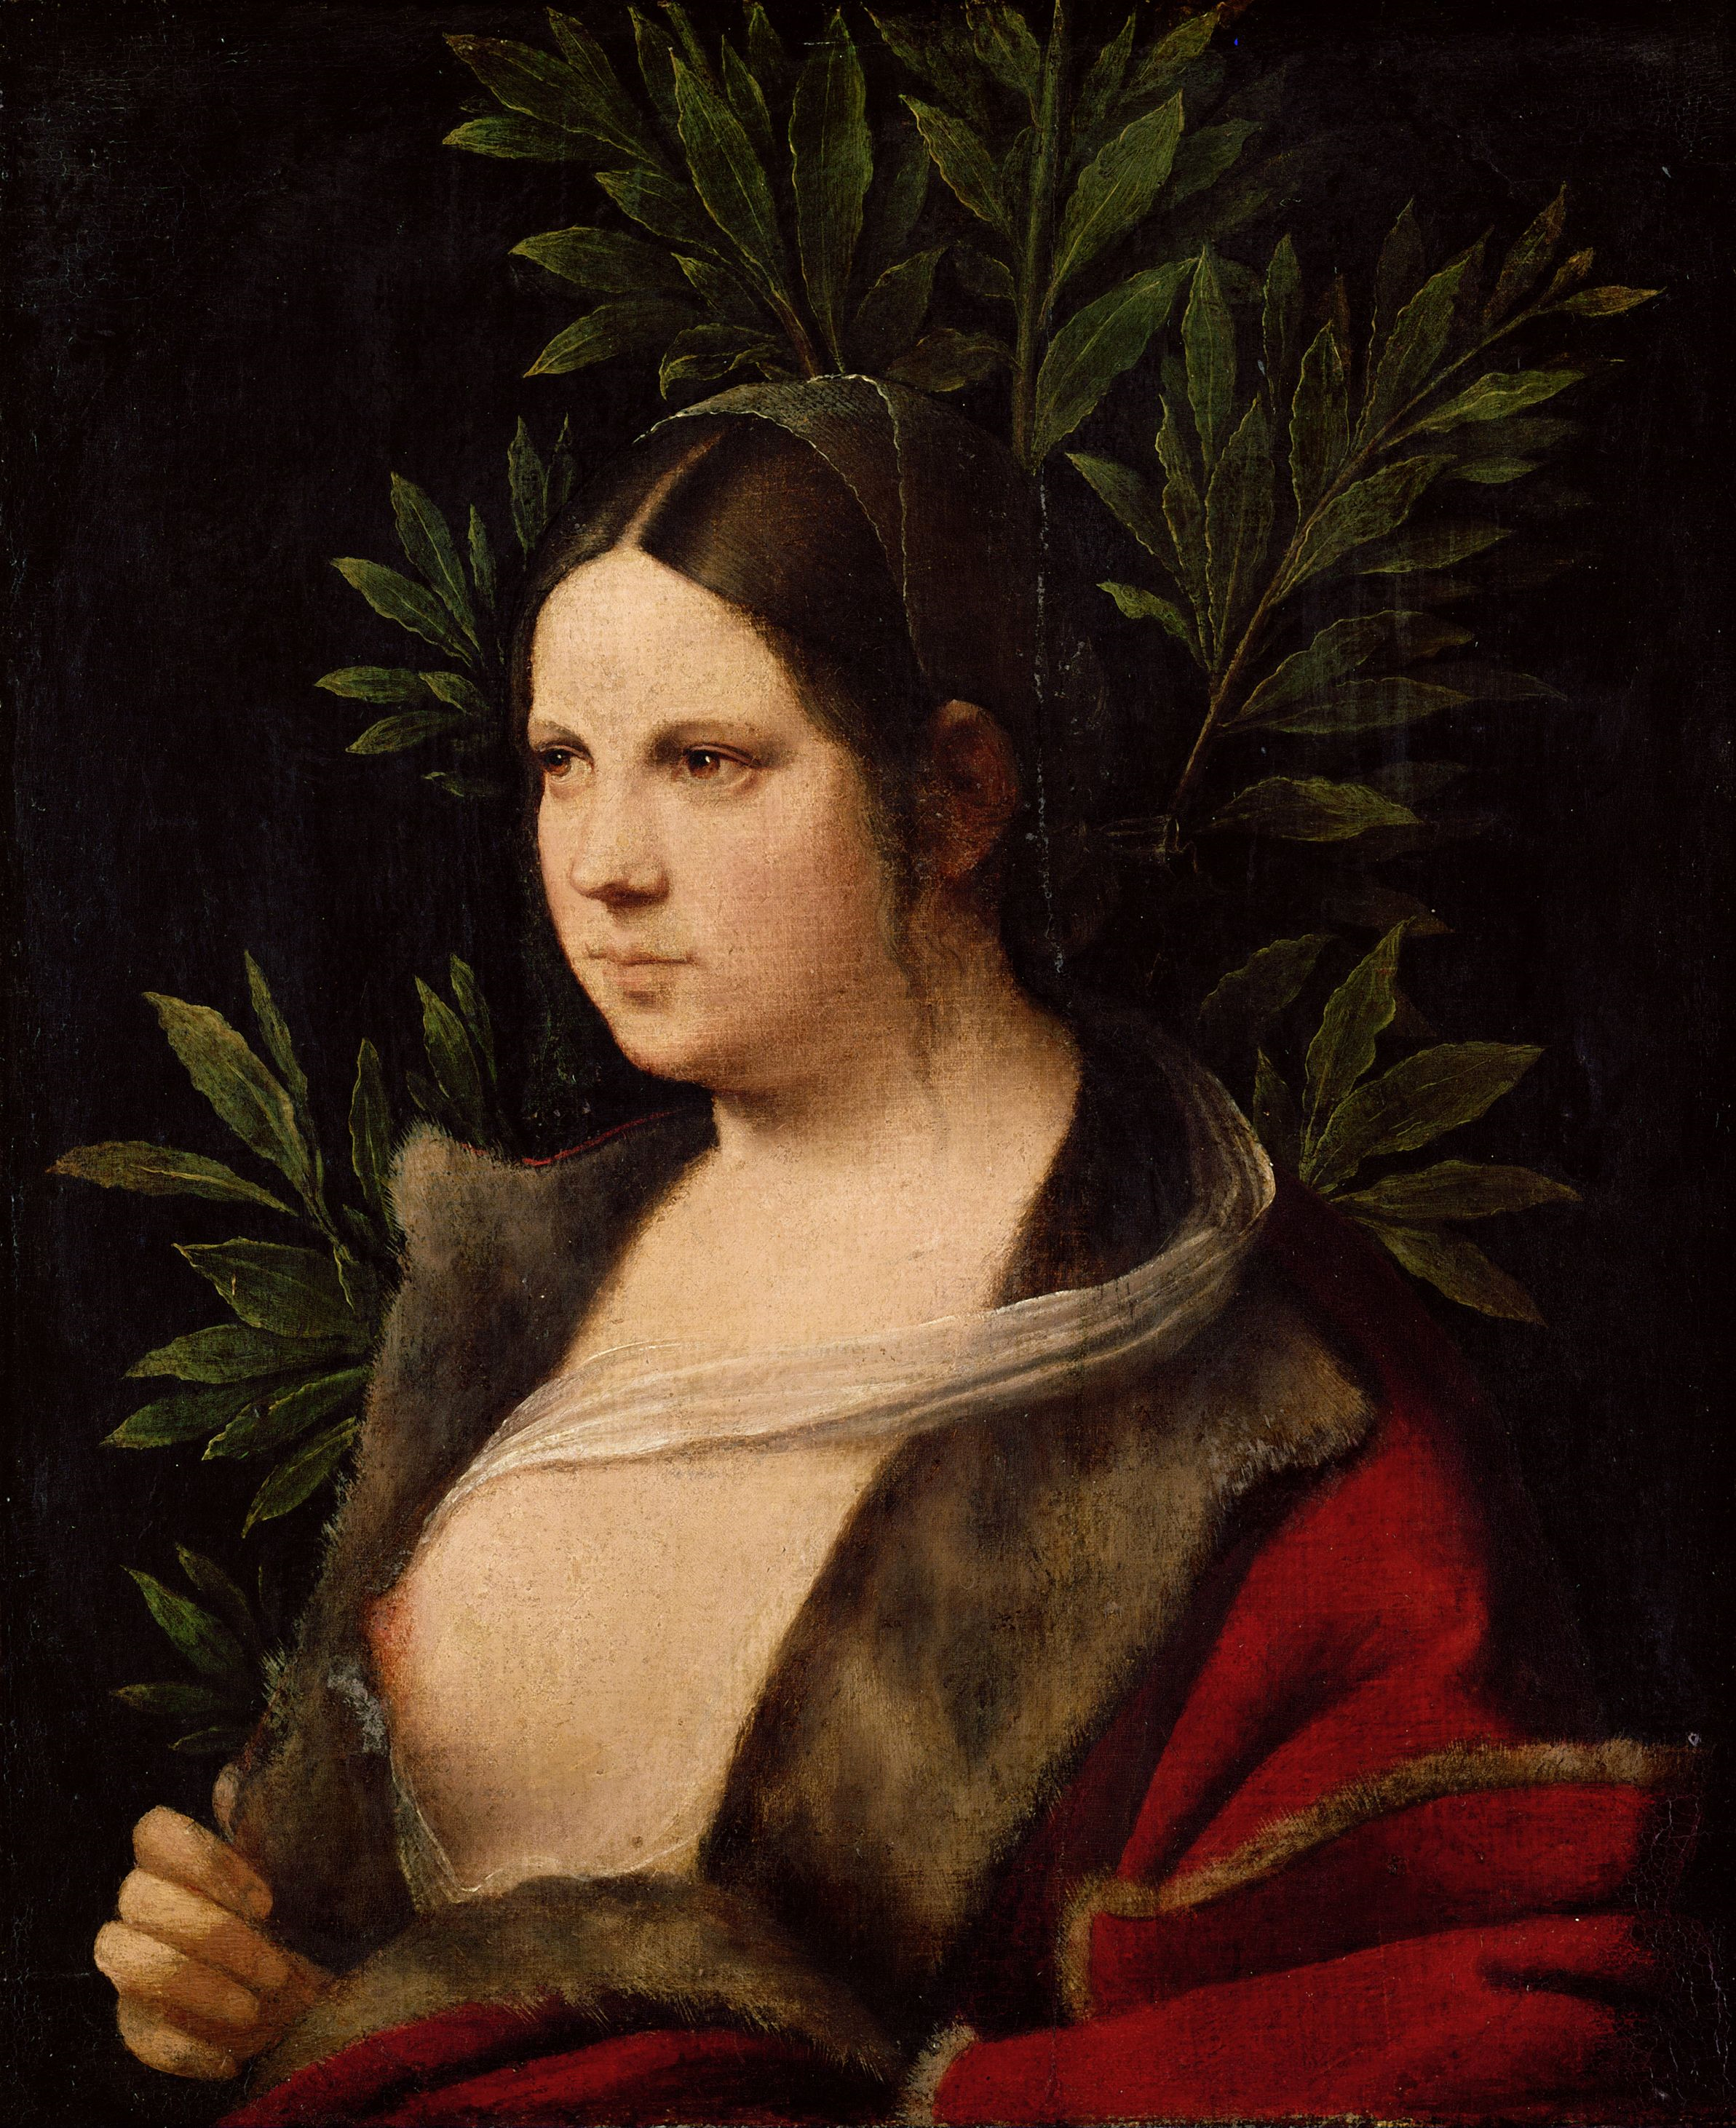 http://upload.wikimedia.org/wikipedia/commons/8/8c/Giorgione_043.jpg